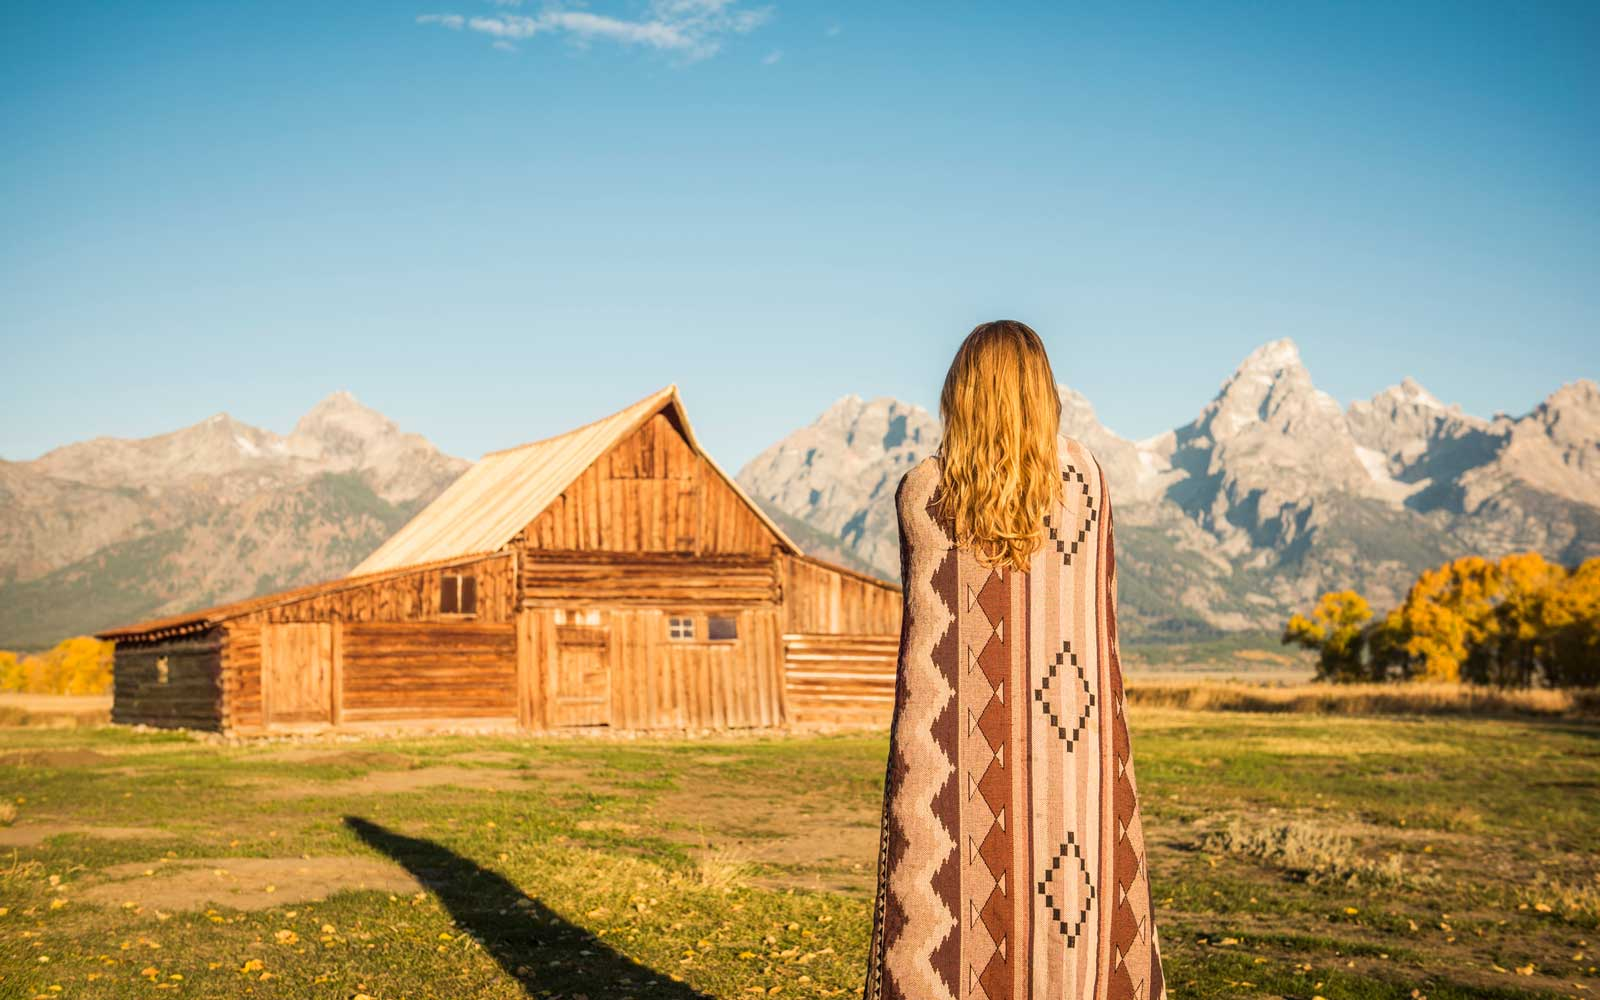 Woman standing in front of barn in a mountainous landscape